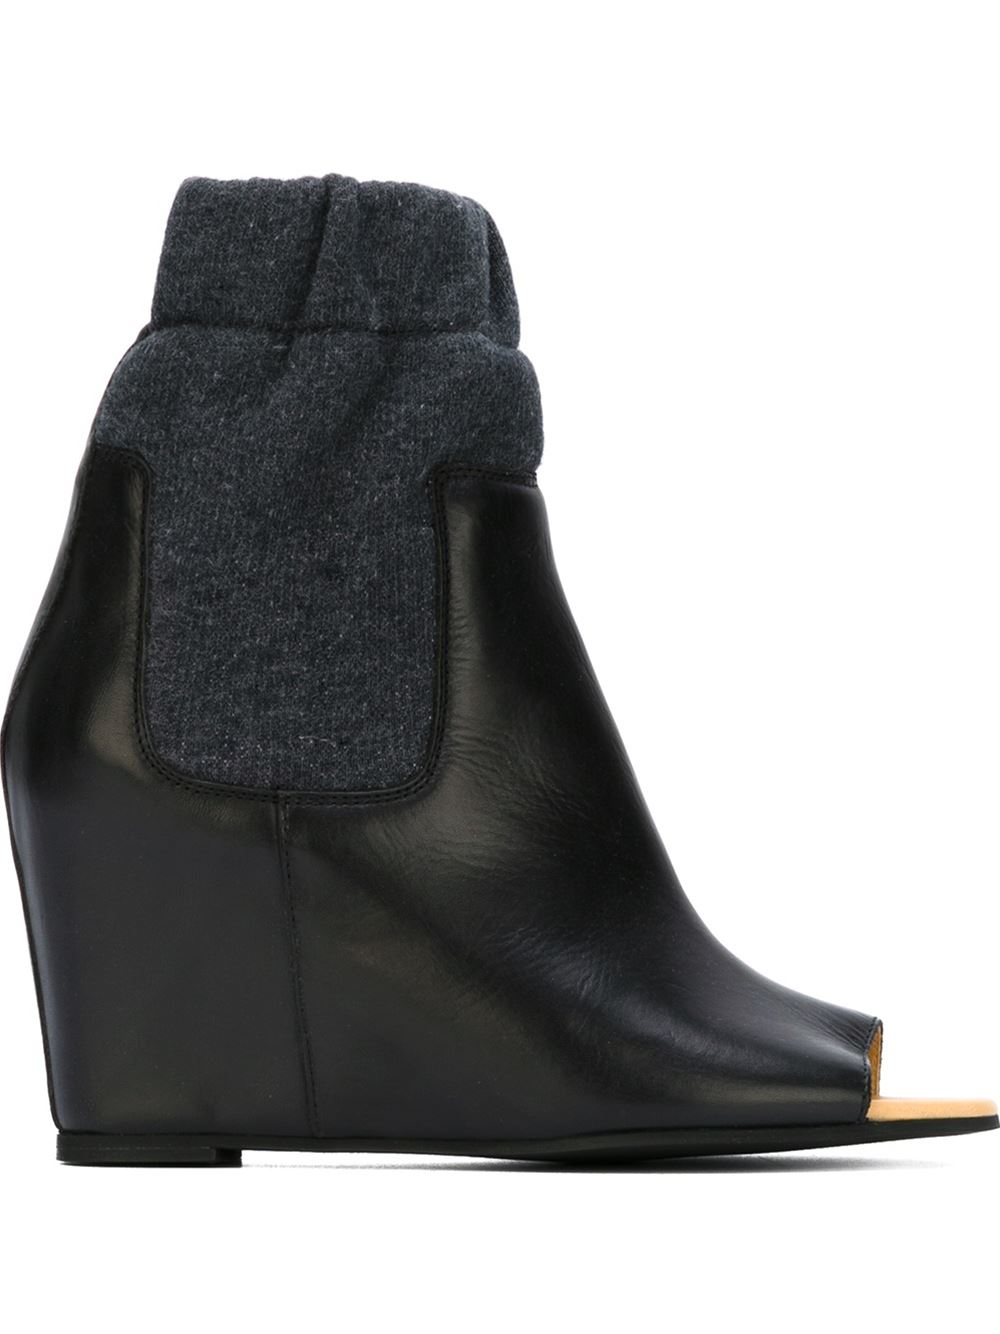 mm6 by maison martin margiela peep toe leather and cotton